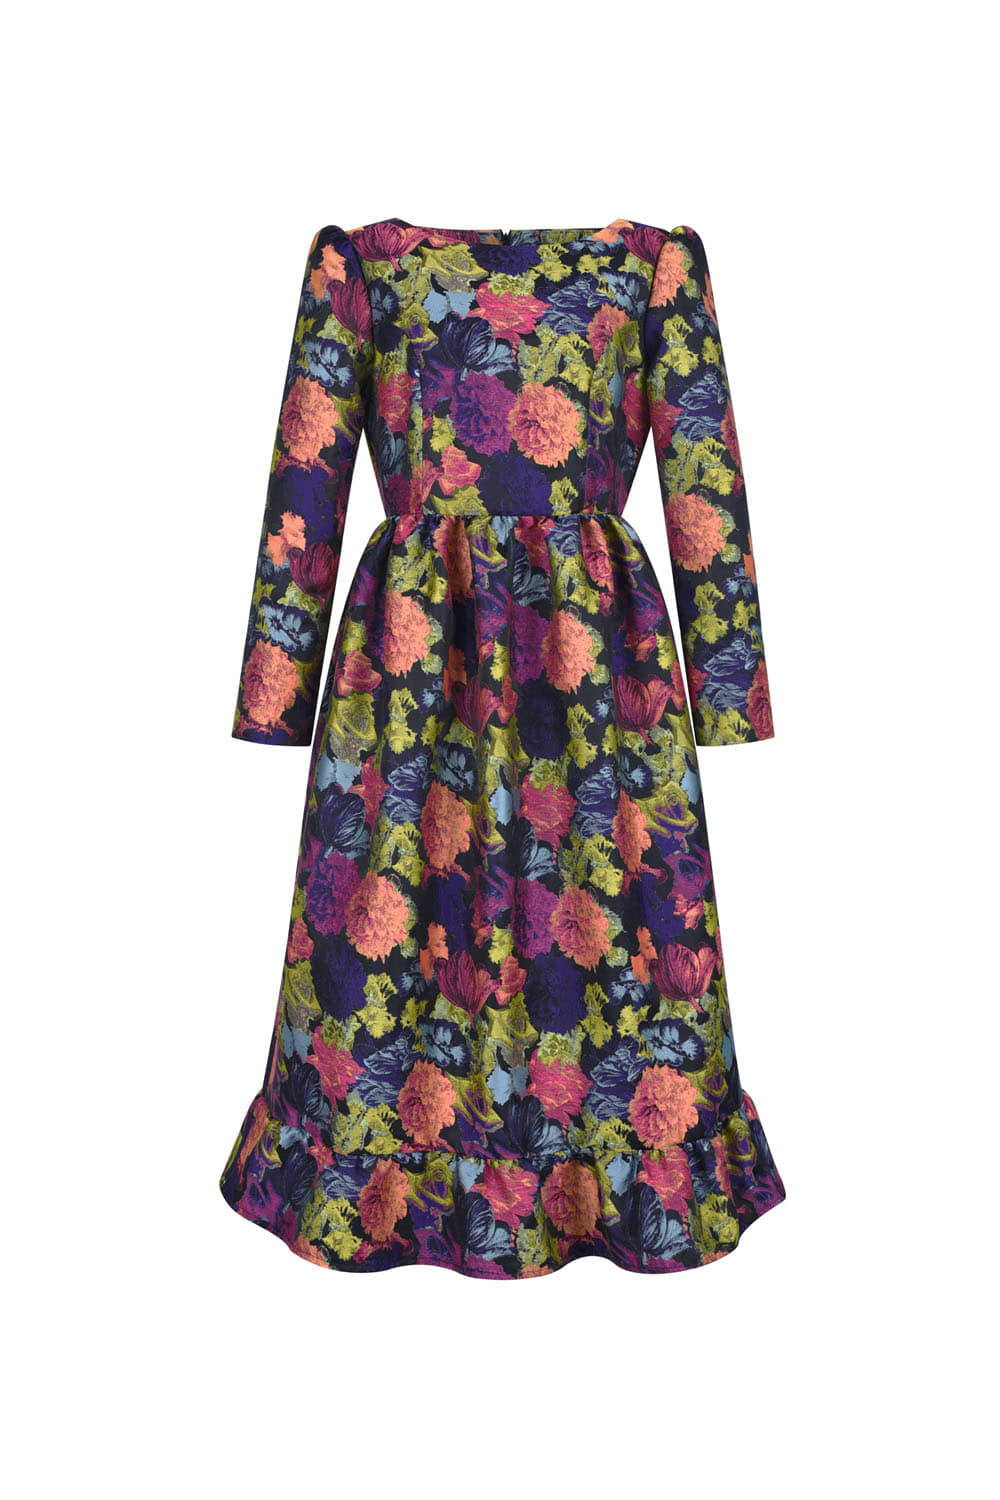 Flower bouquet jacquard dress